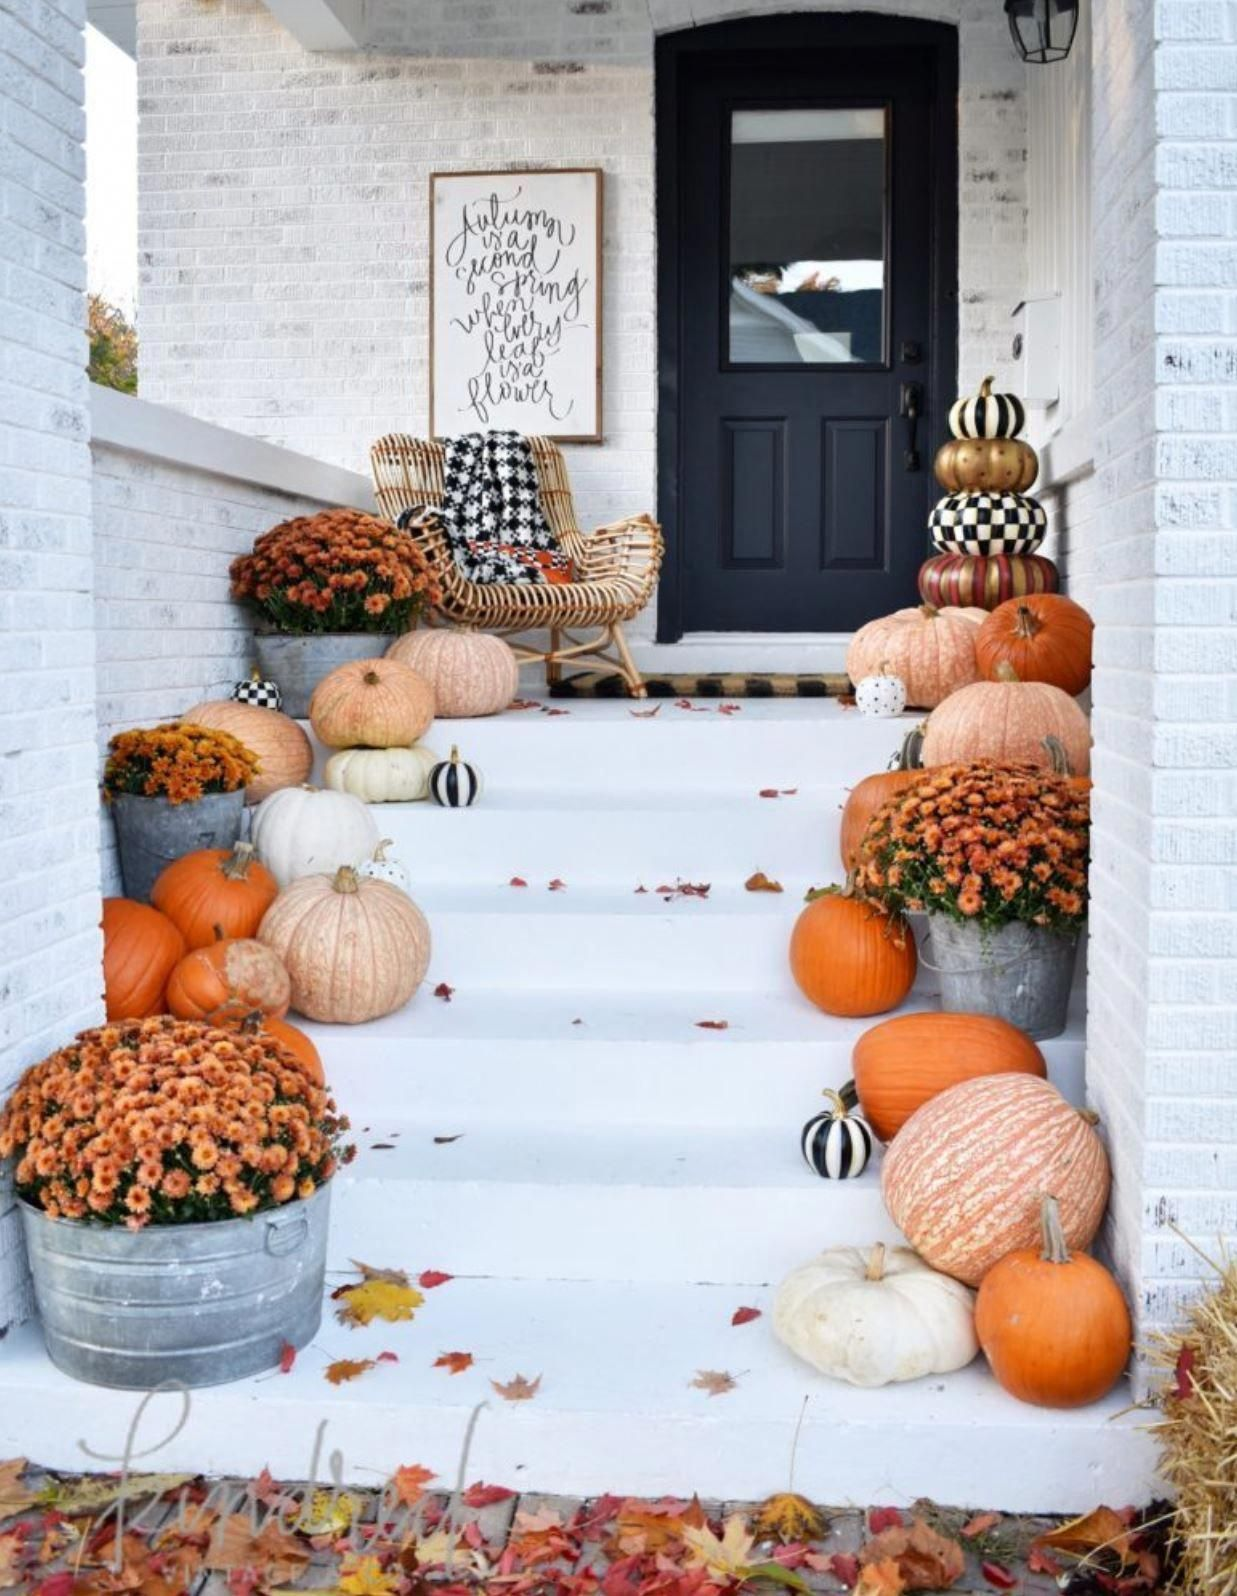 Use these beautiful fall decor ideas to decorate your porch! These cheap and easy ideas will give you some inspiration for how to decorate your porch with wreaths, pumpkins, corn stalks, hay bales, and more!